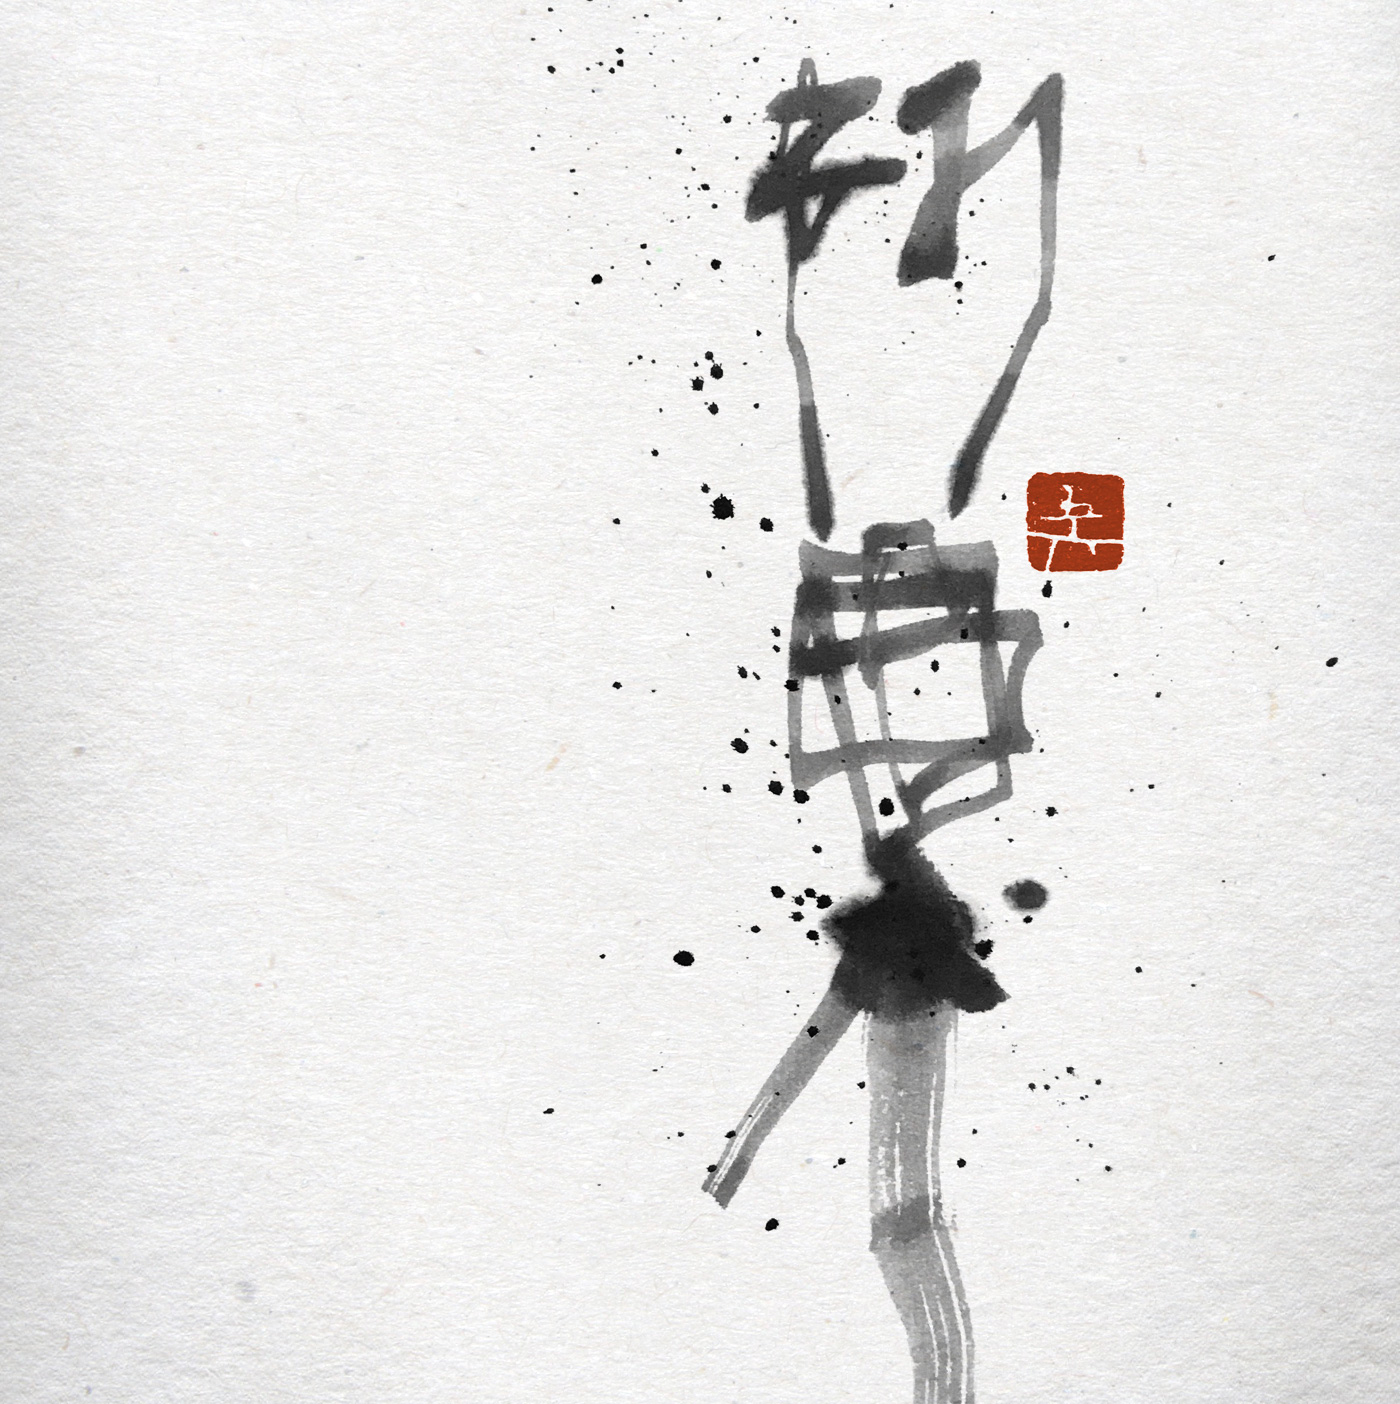 阿呆 あほ あほう stupid or something 書道作品 japaneseart japanesecalligraphy